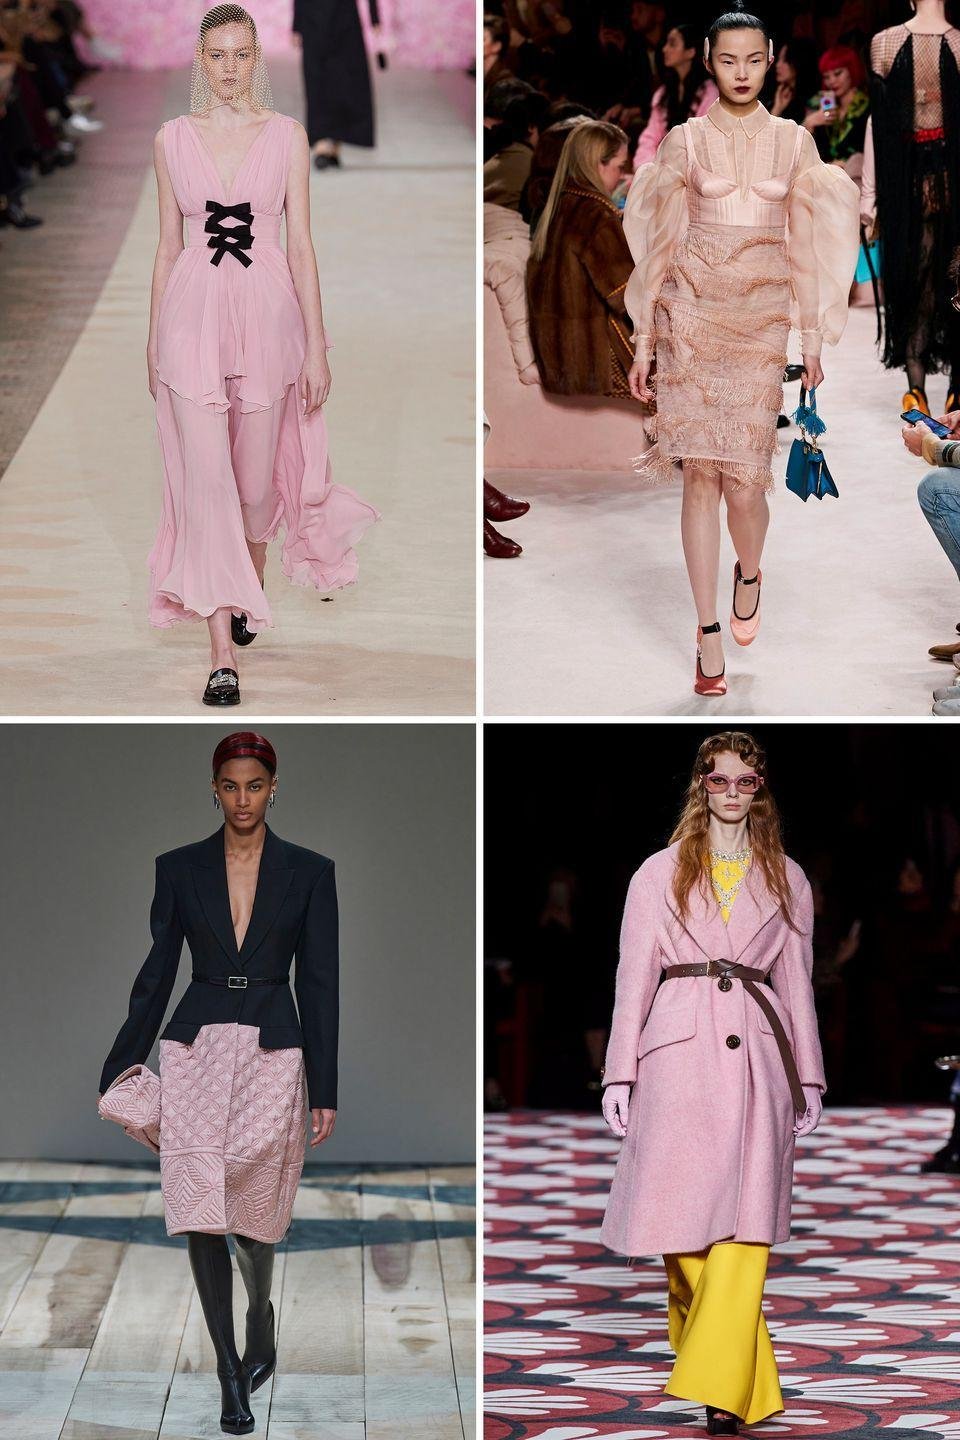 <p>Pink has long been a romantic color among the fashion set, but it's staging a triumphant comeback in a pastel hue this season. Sorbet pink hit the fall 2020 runways in dress, coat, quilted skirt, and even eyewear form. It's a soft approach to adding color to your wardrobe.</p><p><em>Clockwise from top left: Giambattista Valli, Fendi, Miu Miu, Alexander McQueen</em></p>